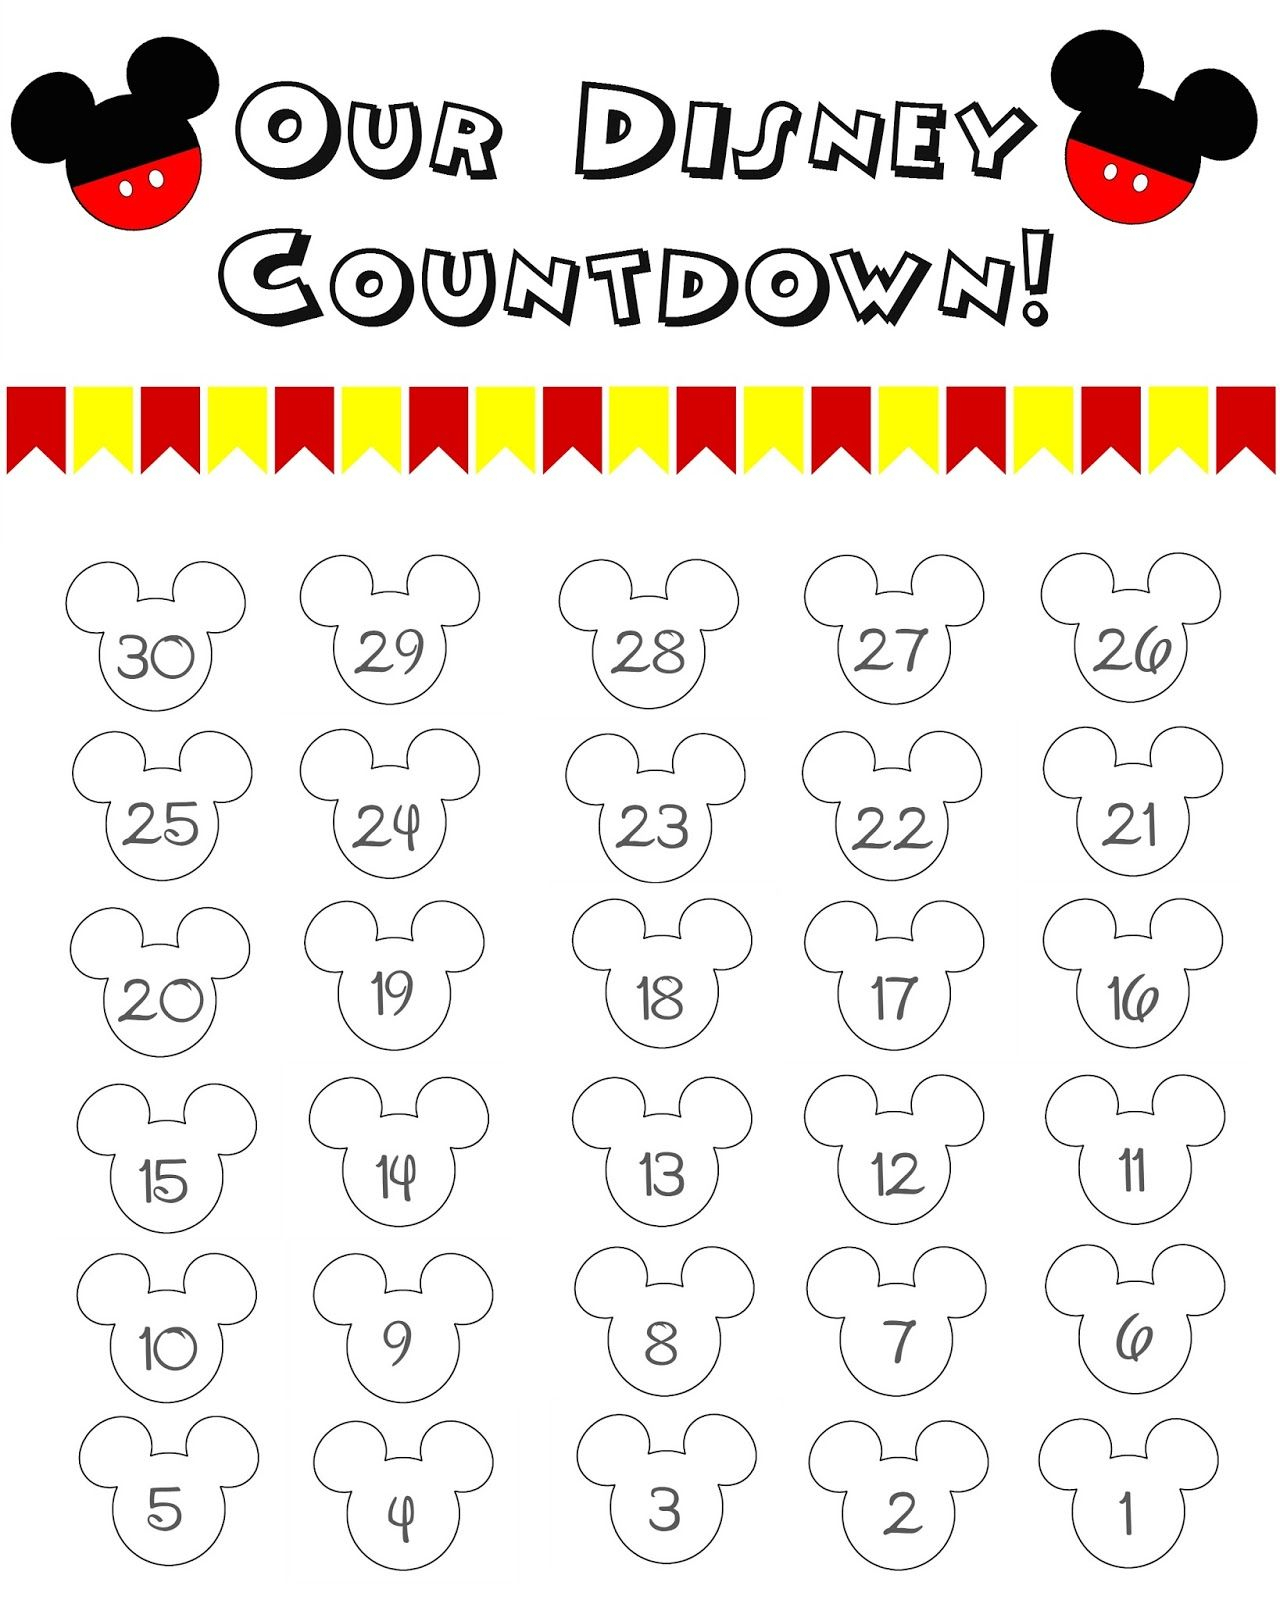 Disney World Countdown Calendar - Free Printable | Disney